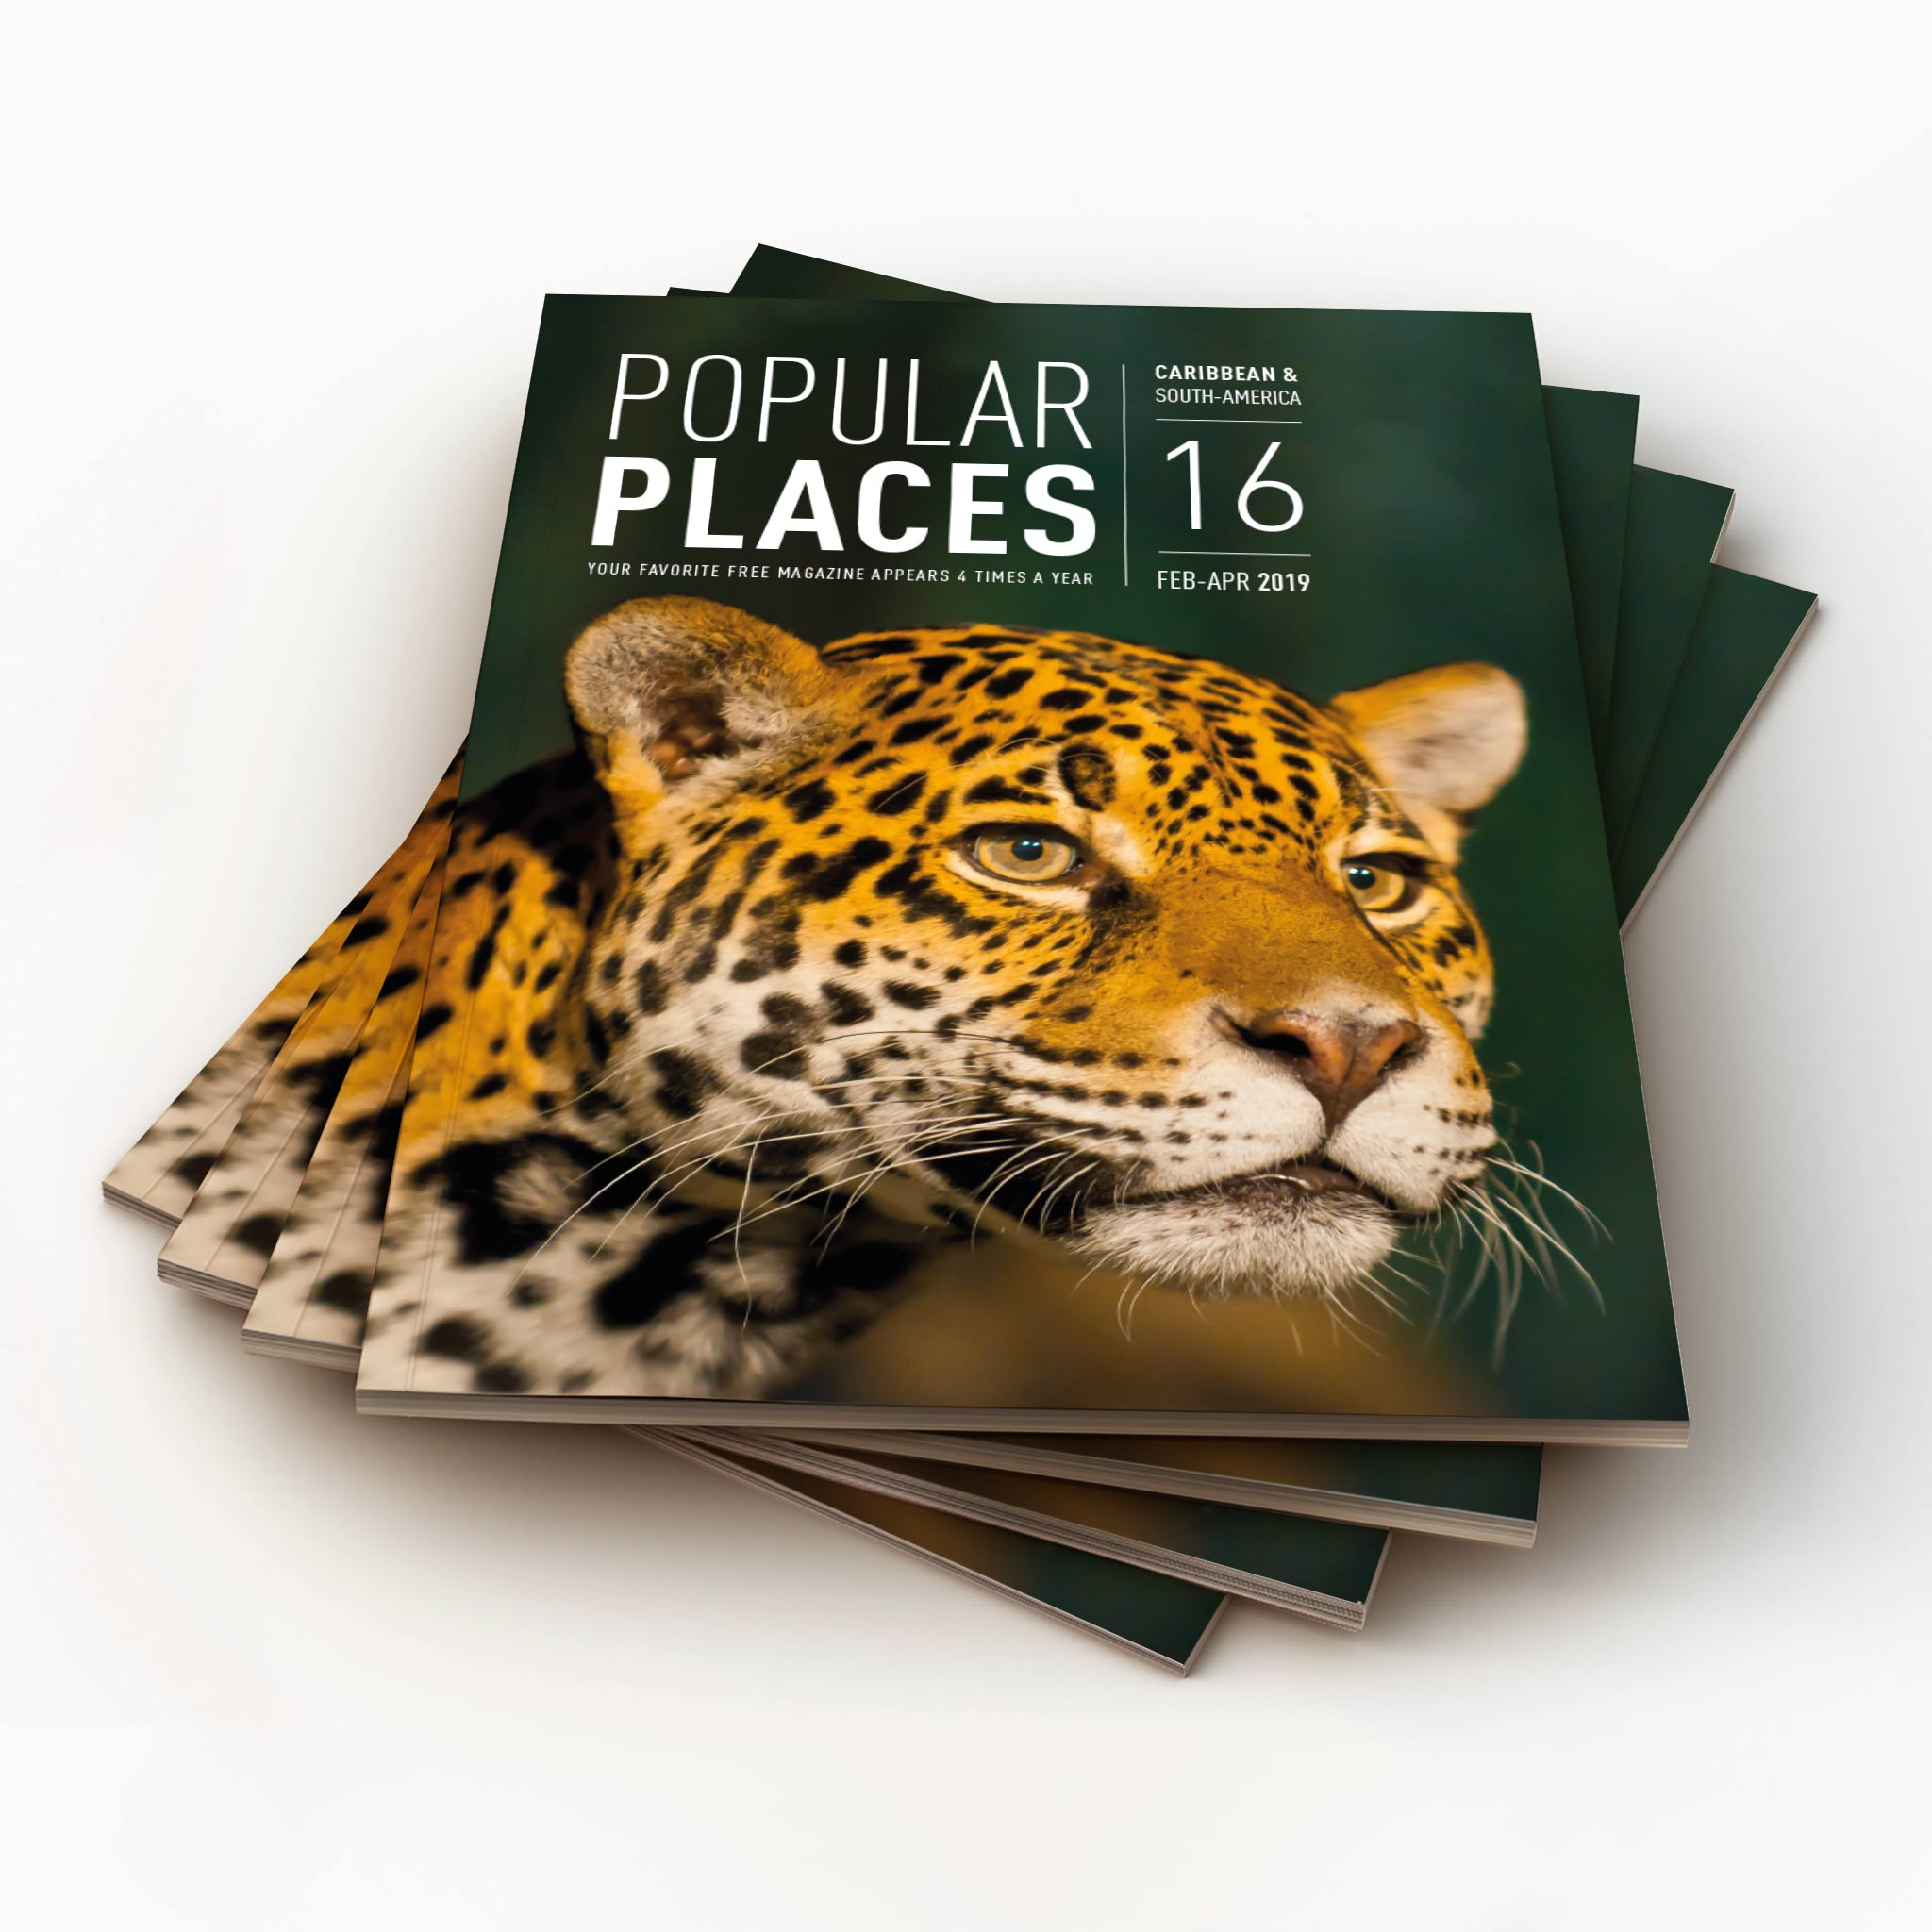 Popular Places 16